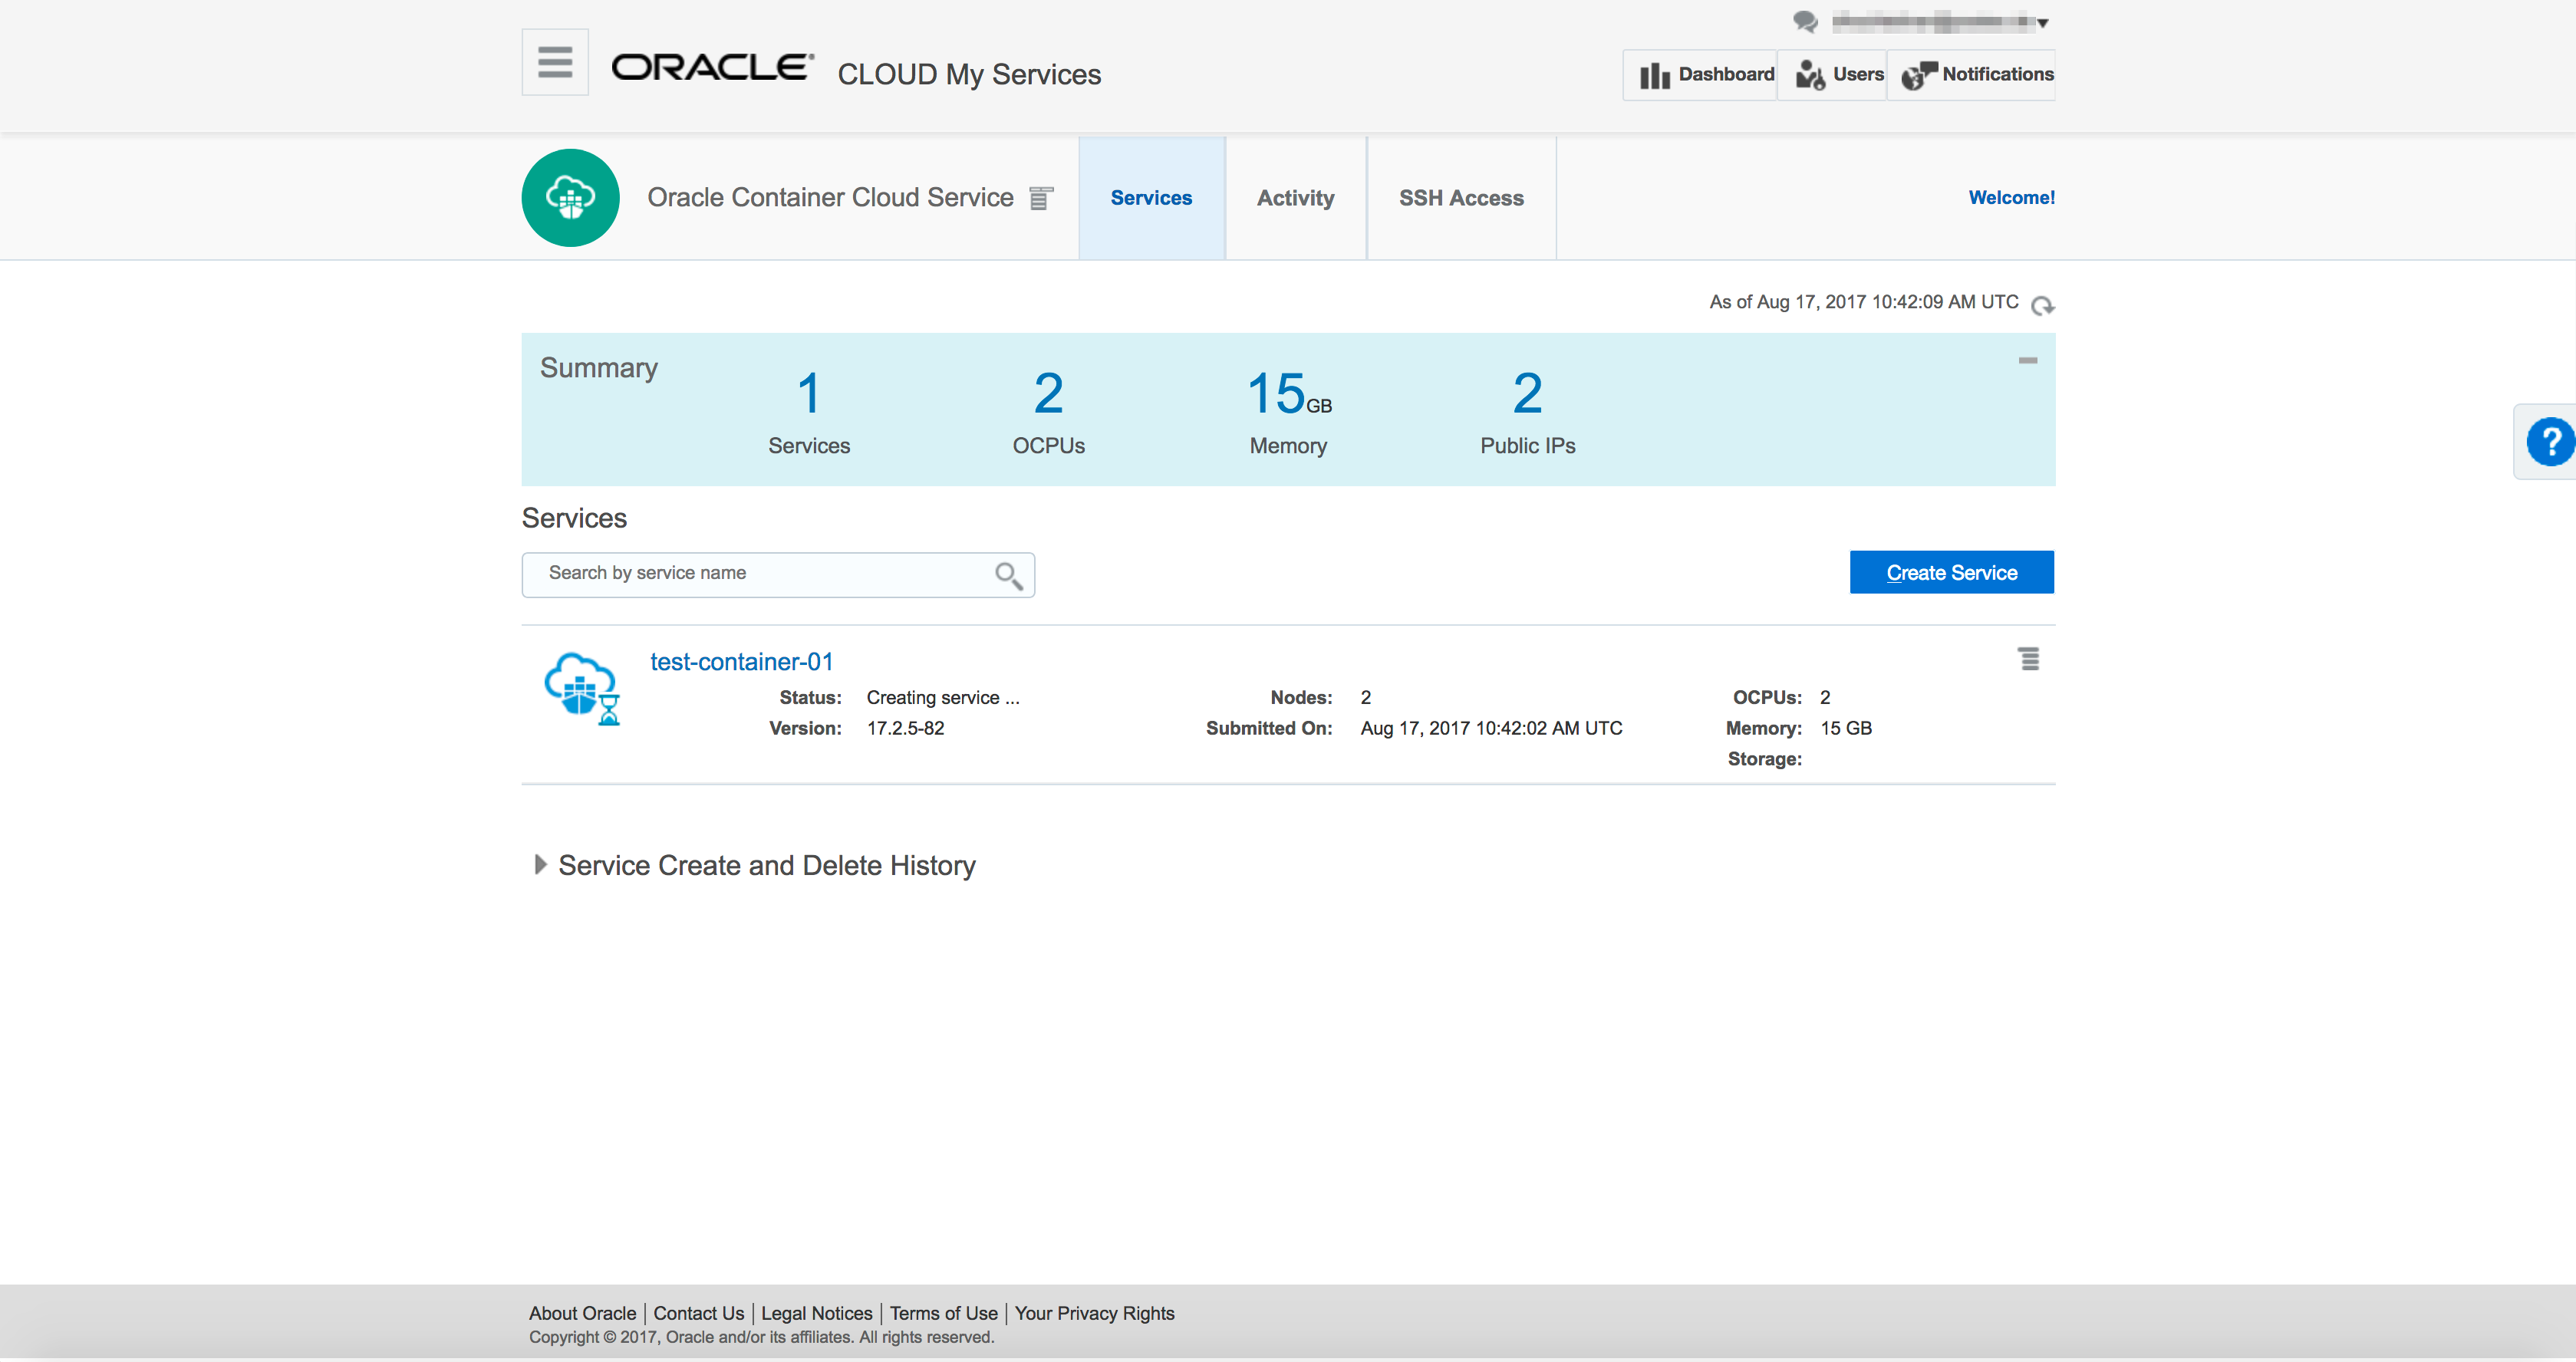 Deploy APEX Docker Image on Oracle Container Cloud Service